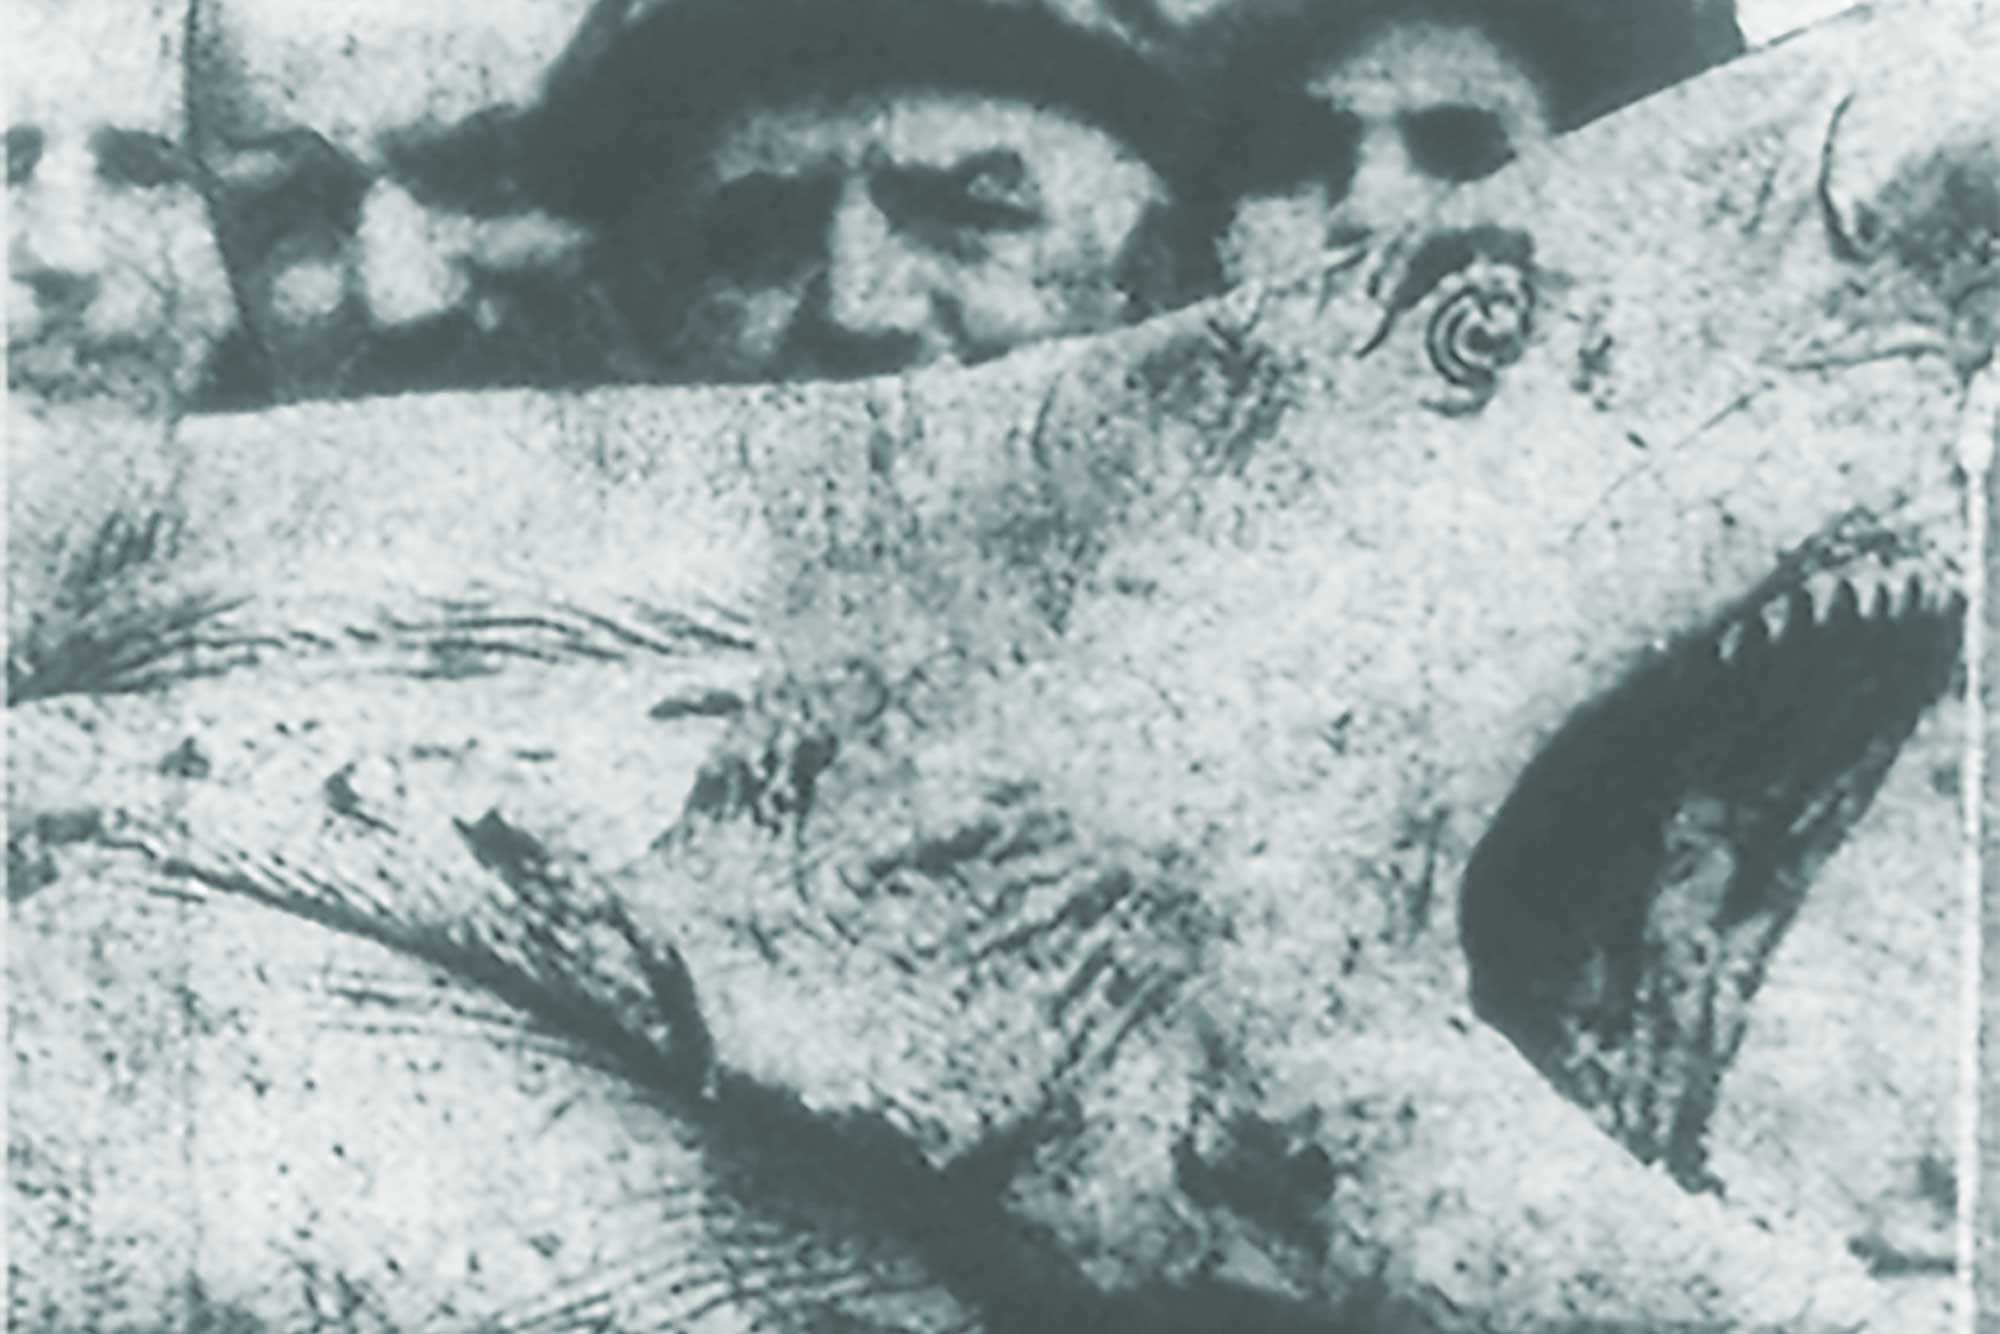 July Marks The 100th Anniversary Of Jersey Shore Attacks That Inspired A Worldwide Fear Sharks